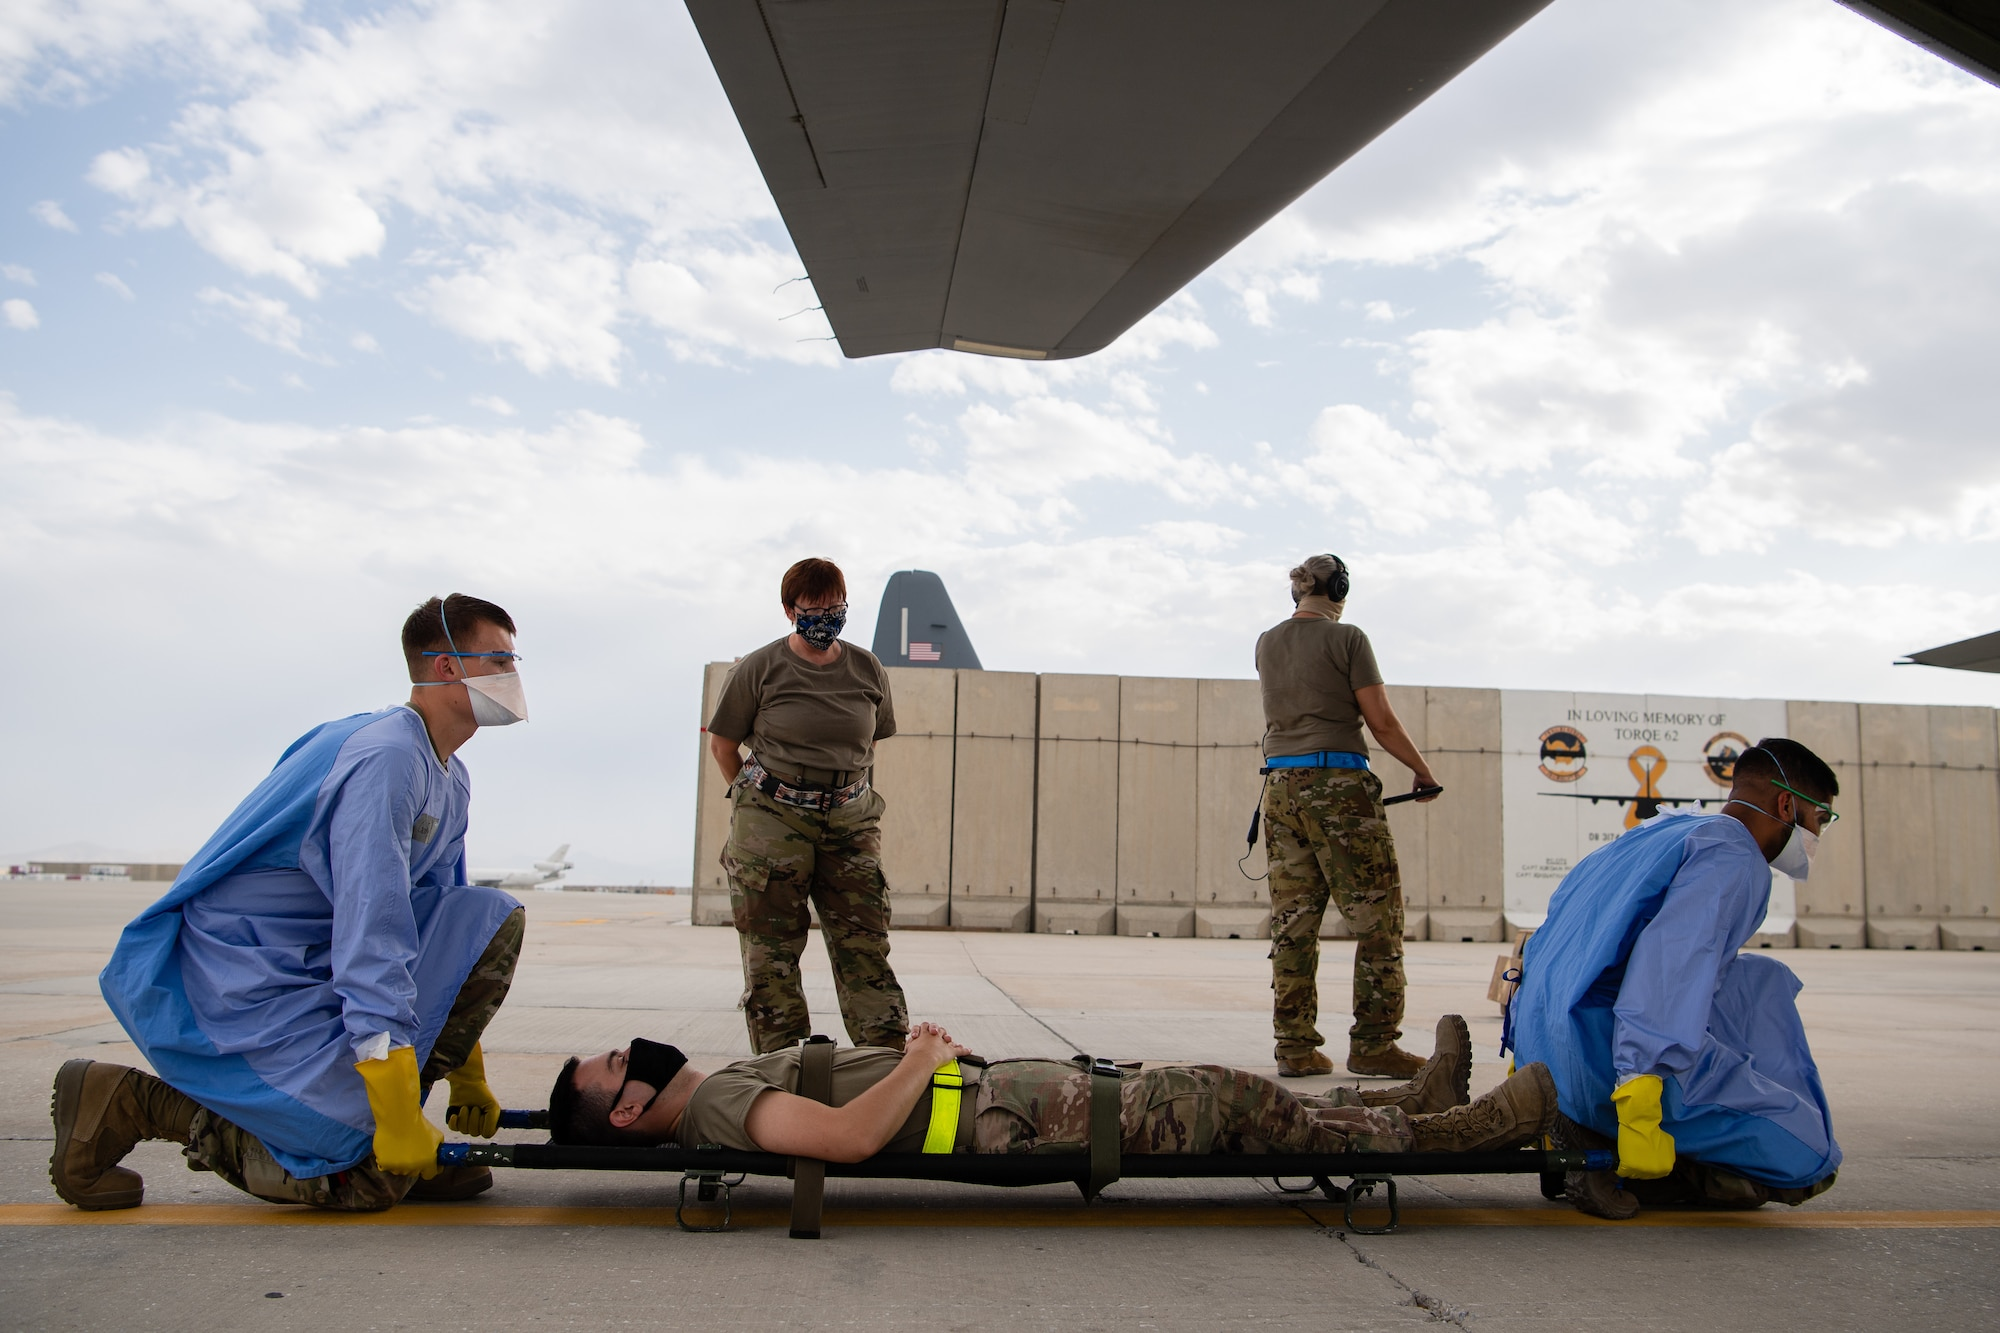 U.S. Air Force members assigned to the 405th Expeditionary Aeromedical Evacuation Squadron lift a litter for transport during a training exercise for the Negatively Pressurized Conex-Lite in Southwest Asia, July 30, 2020.  The NPC-Lite is the latest isolated containment chamber developed for intra-theater airlift of individuals with infectious diseases like COVID-19 and is designed to fit inside a C-130 aircraft.  (U.S. Air Force photo by Staff Sgt. Justin Parsons)